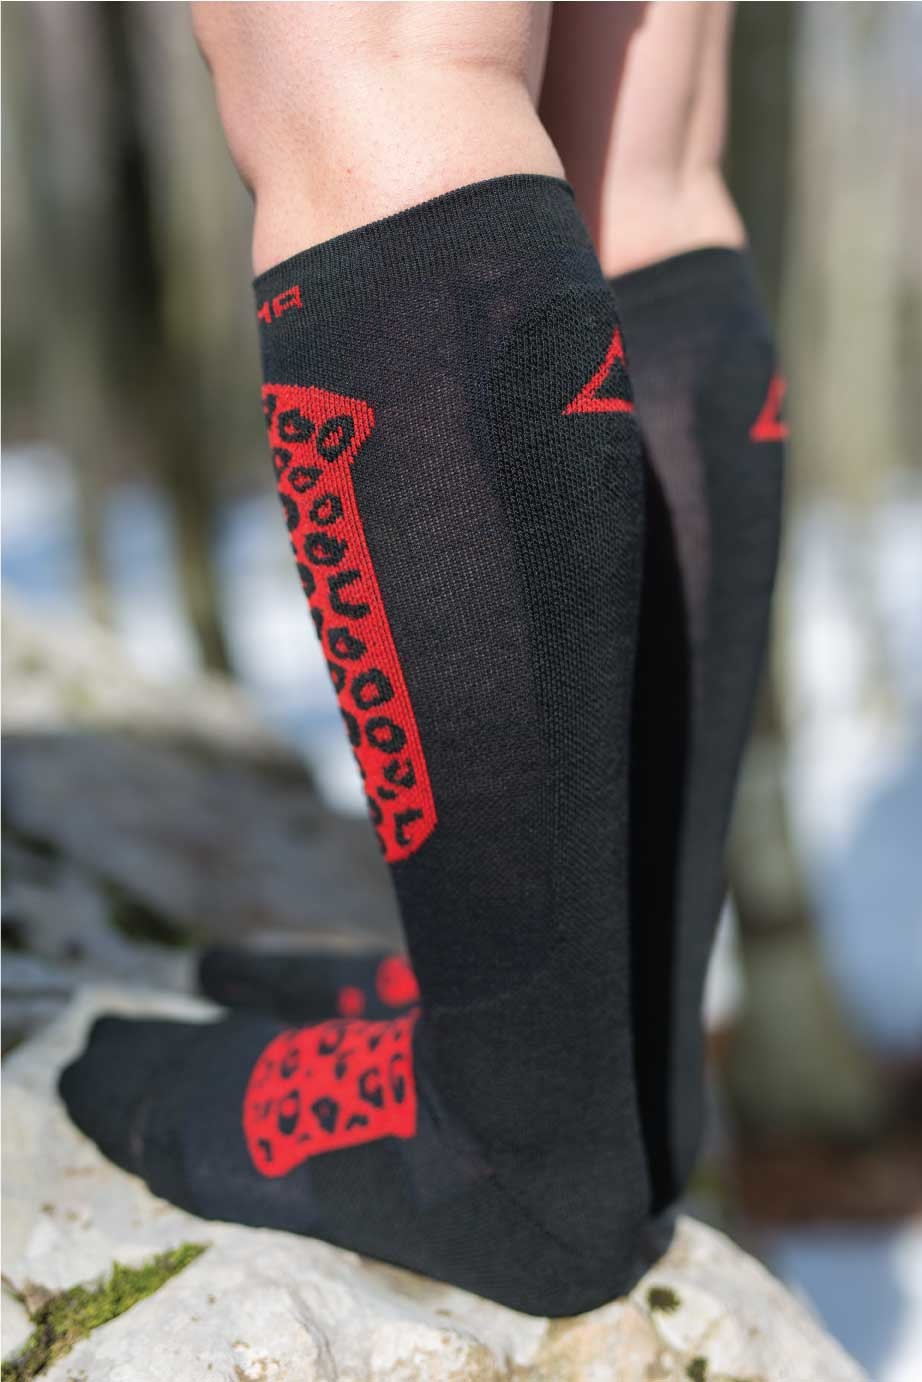 Dogmasocks Snow Eater winter socks for women. with Red Leopard design. Back side in black with red Dogma logo